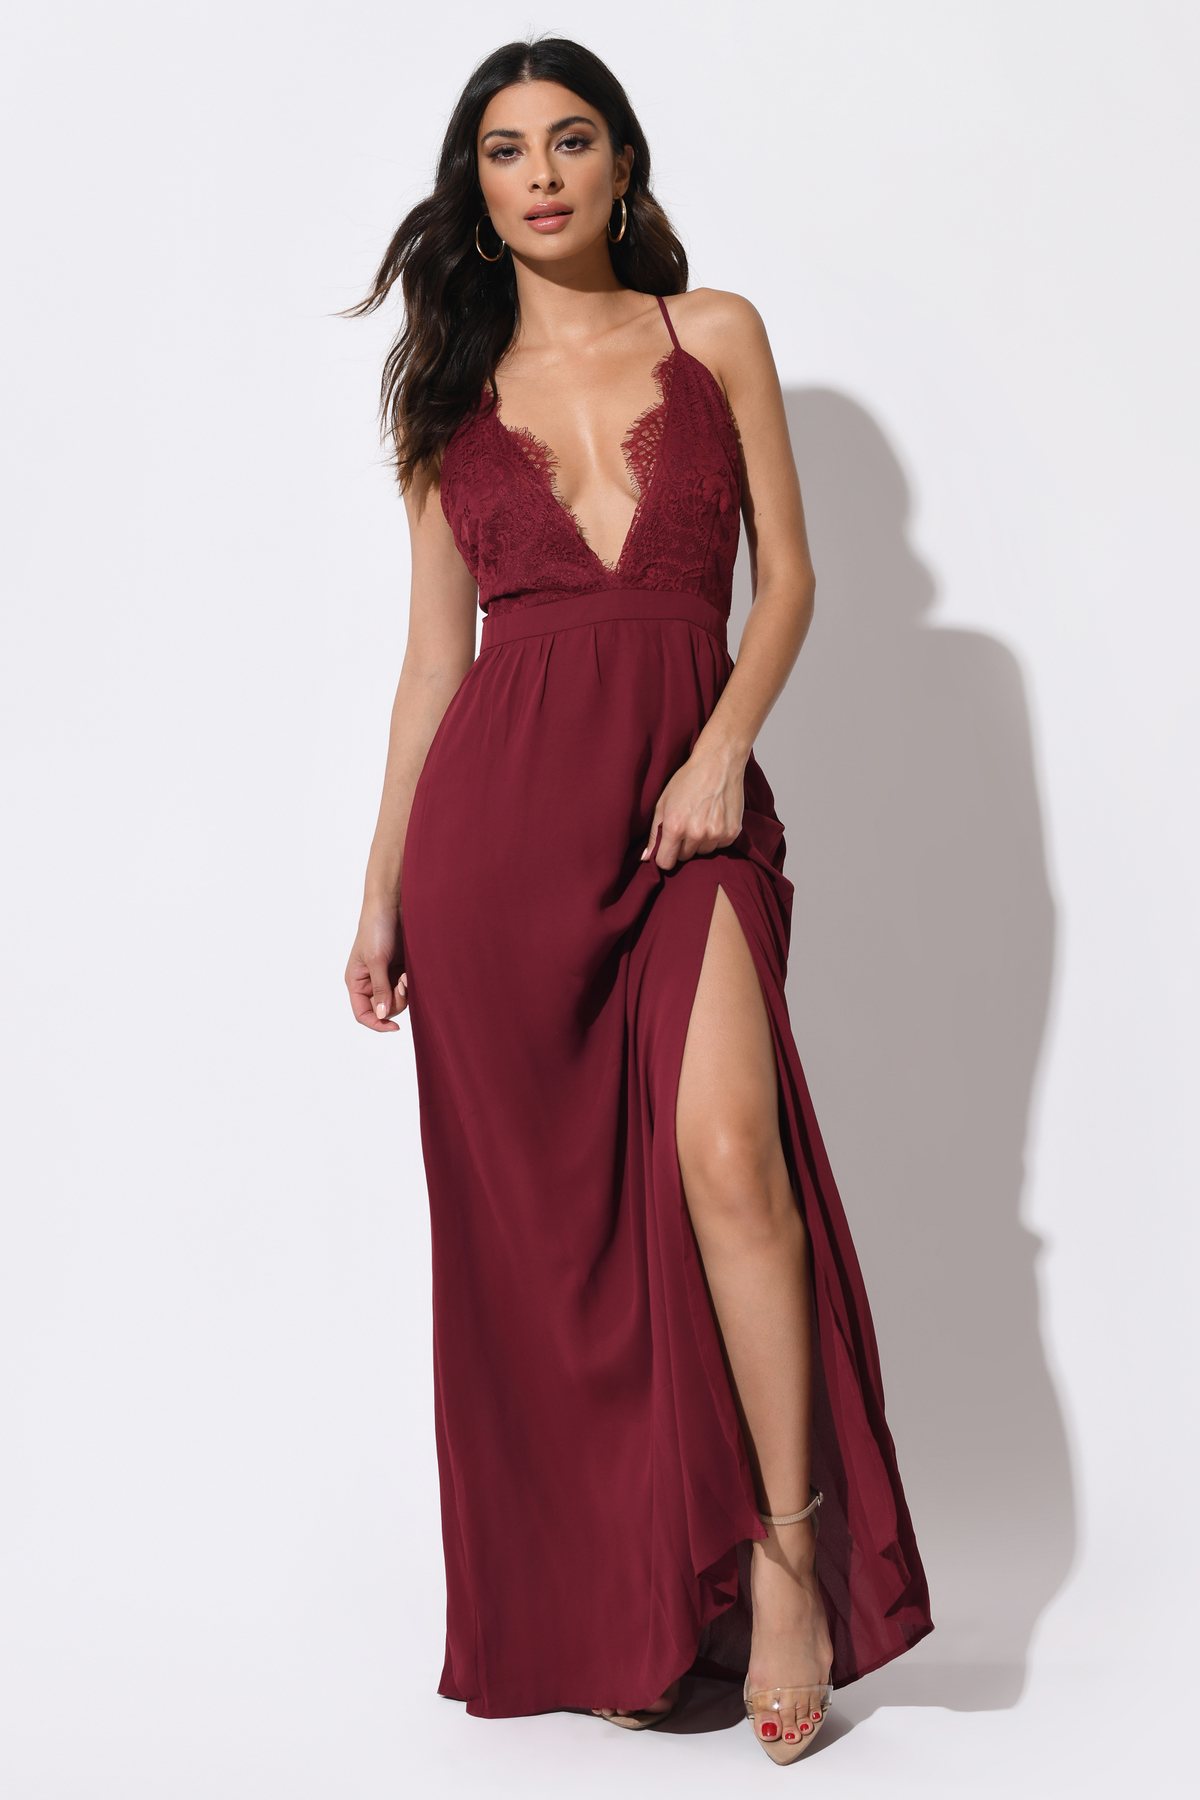 Opposites Attract Wine Lace Maxi Dress - $36.00 | Tobi